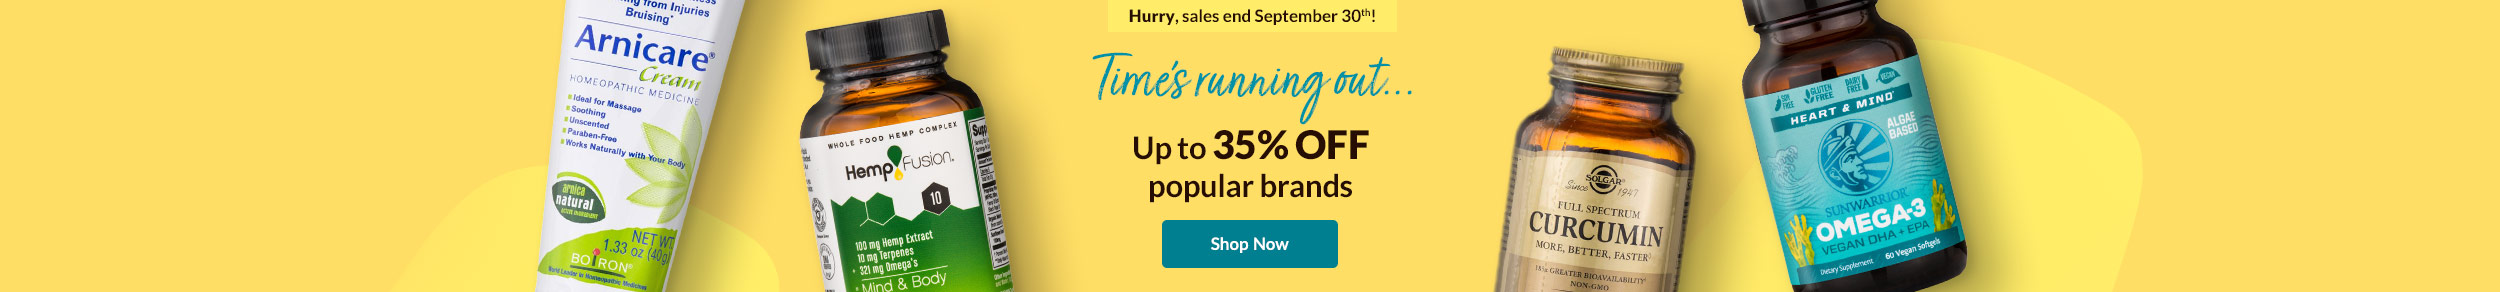 Hurry! Sales ends September 30th! Time's running out... Up to 35% OFF popular brands. SHOP NOW!